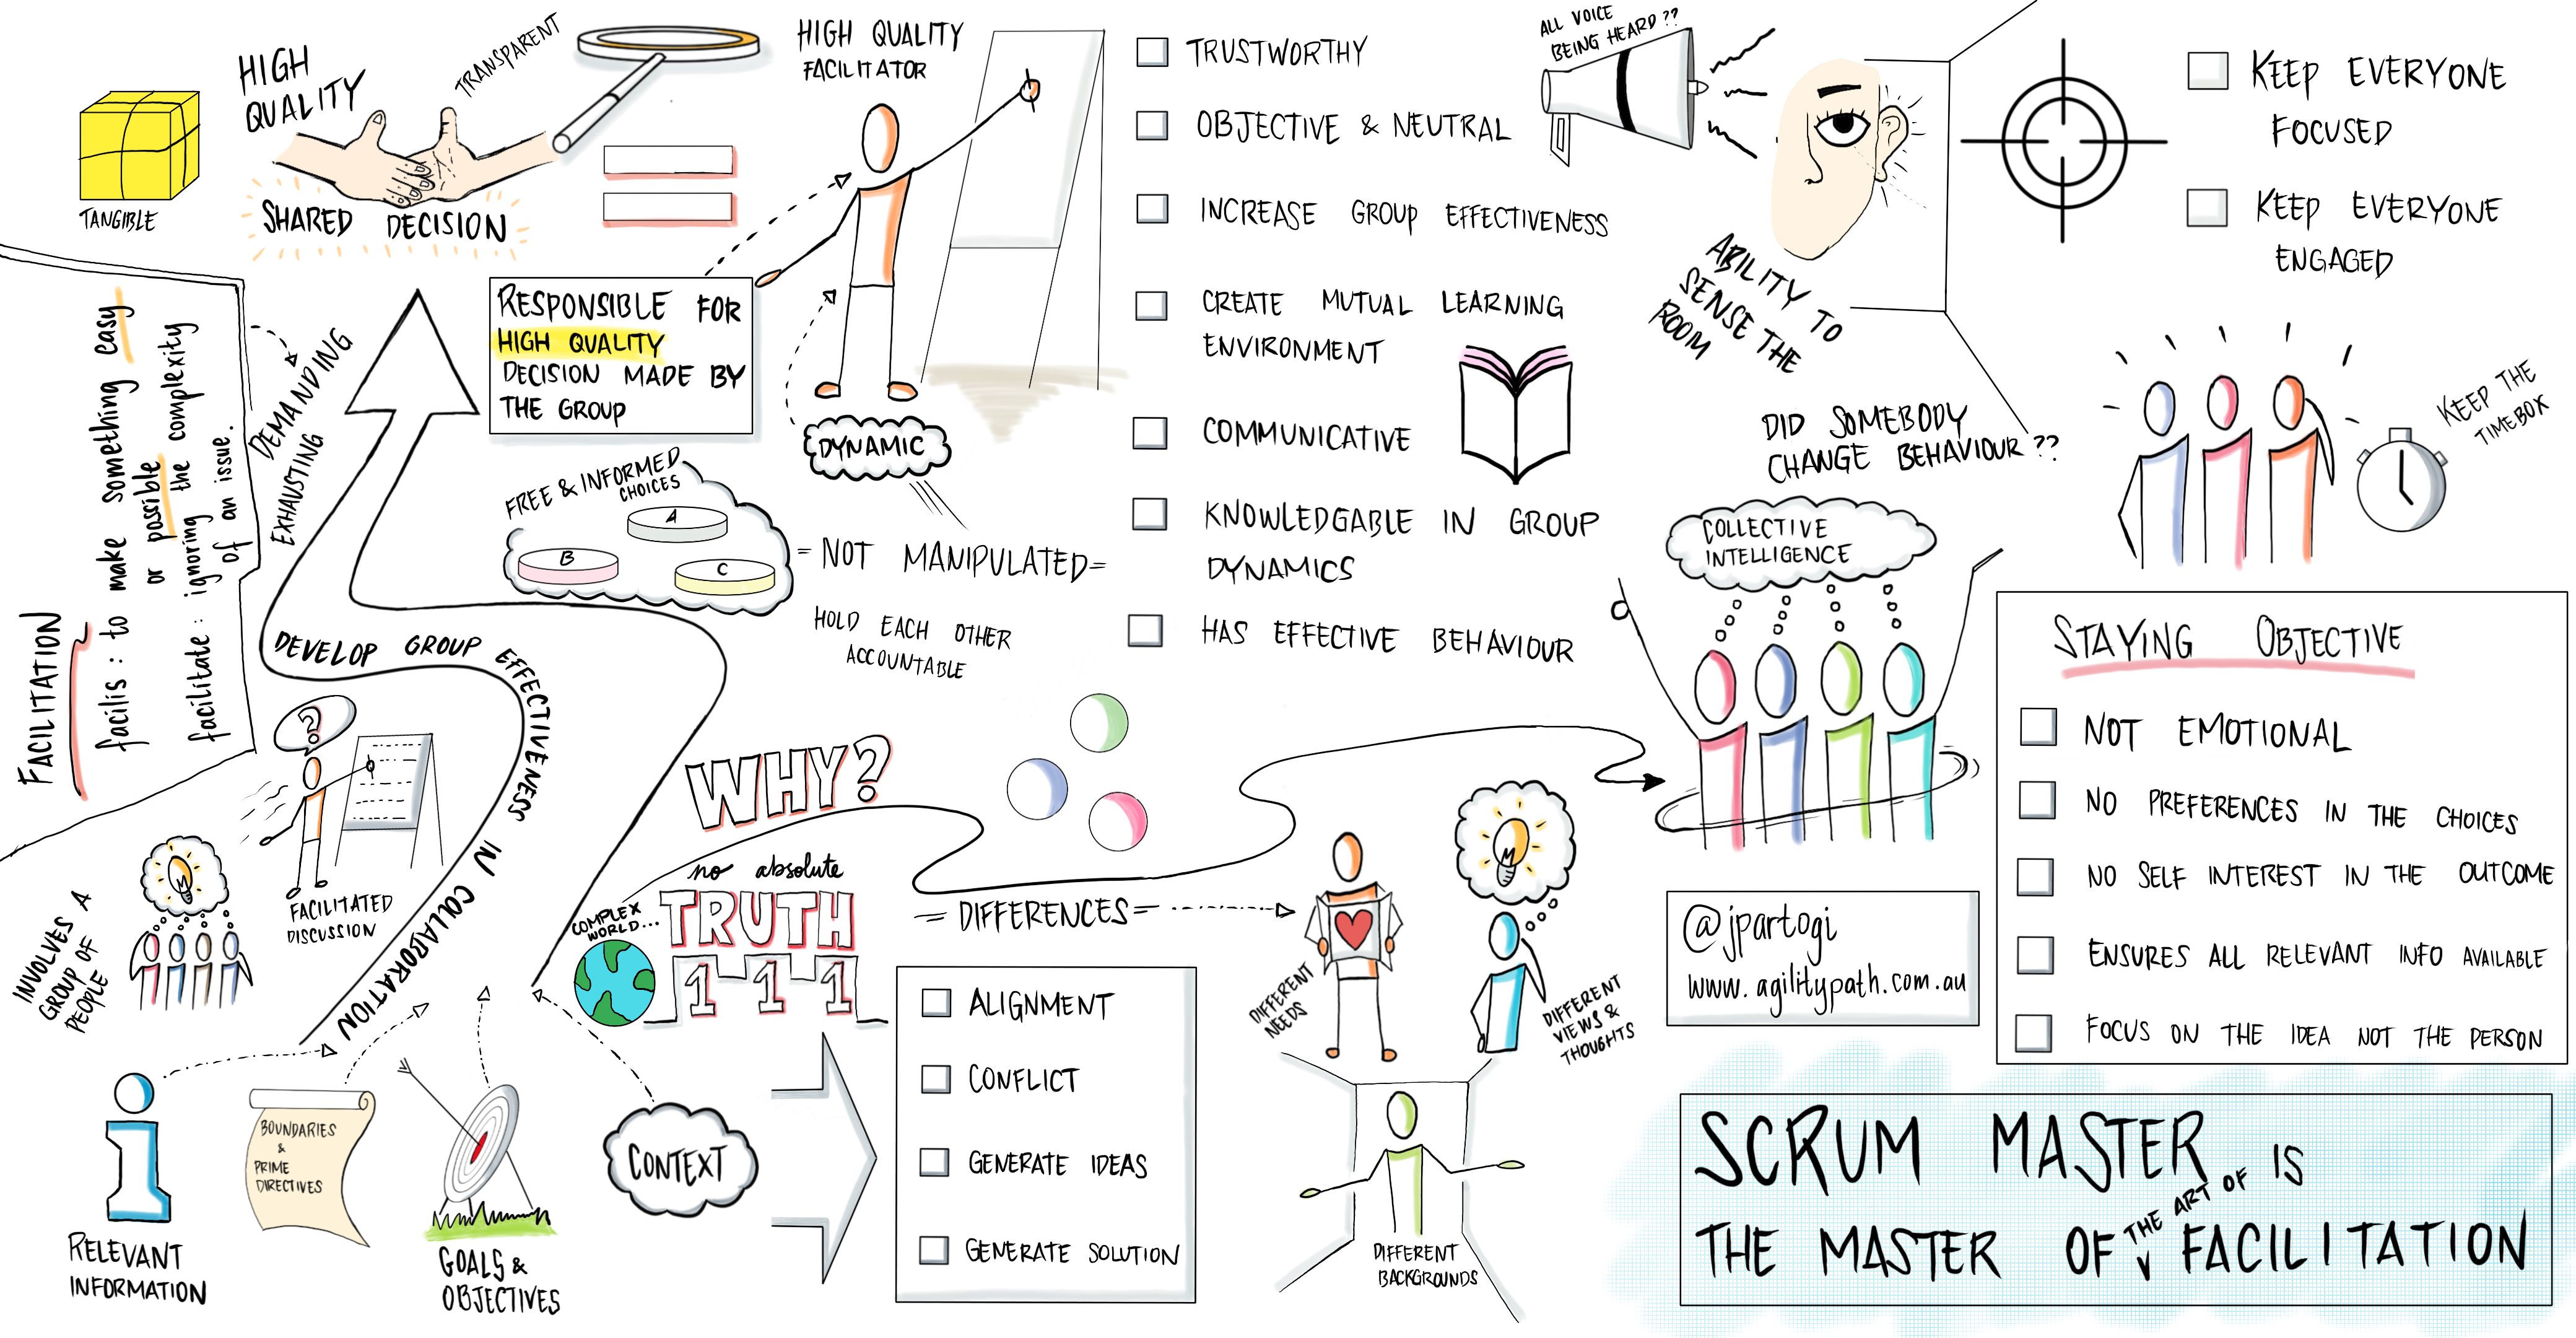 Scrum Master The Master Of The Art Of Facilitation Scrum